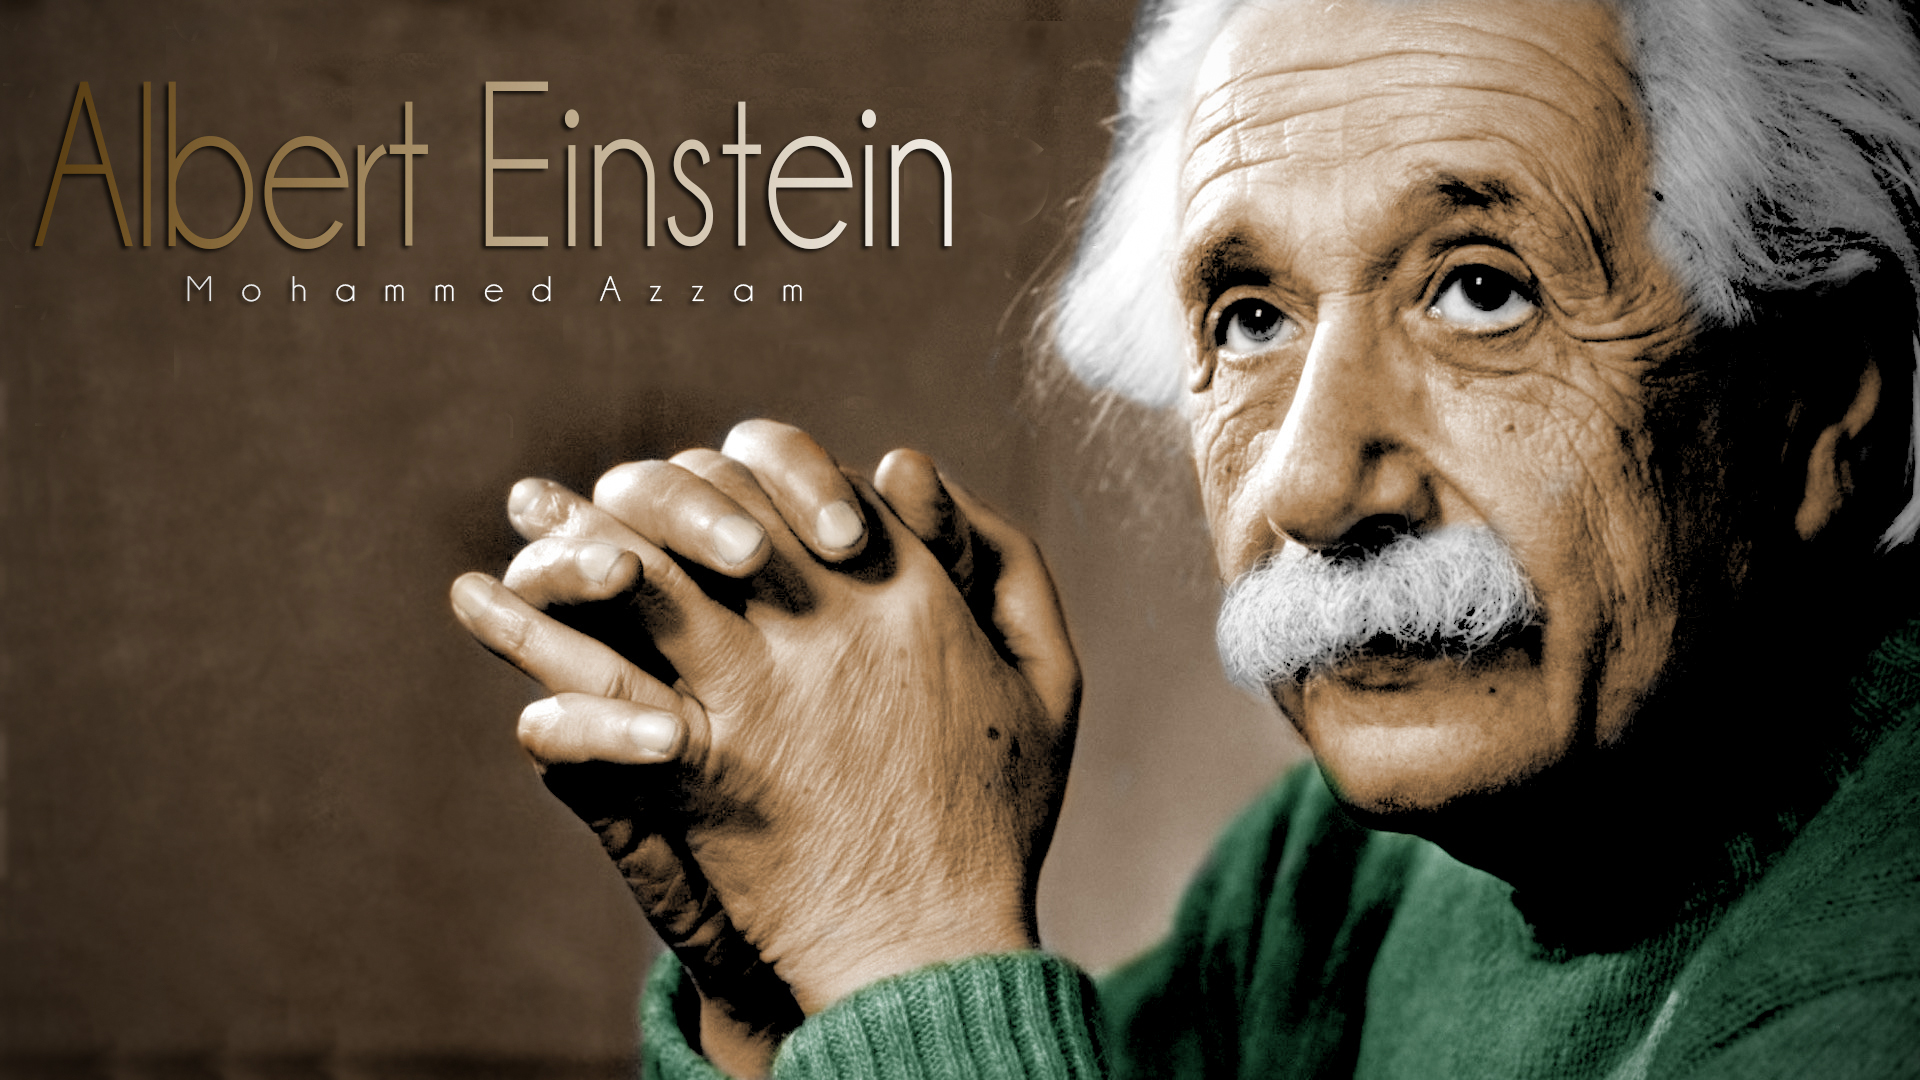 albert einsteins life Albert einstein was a physicist and a mathematician by profession, and one of the greatest thinkers of recent times, that gave us the vision okay that's all good to know, but what did albert einstein invent , you may ask.